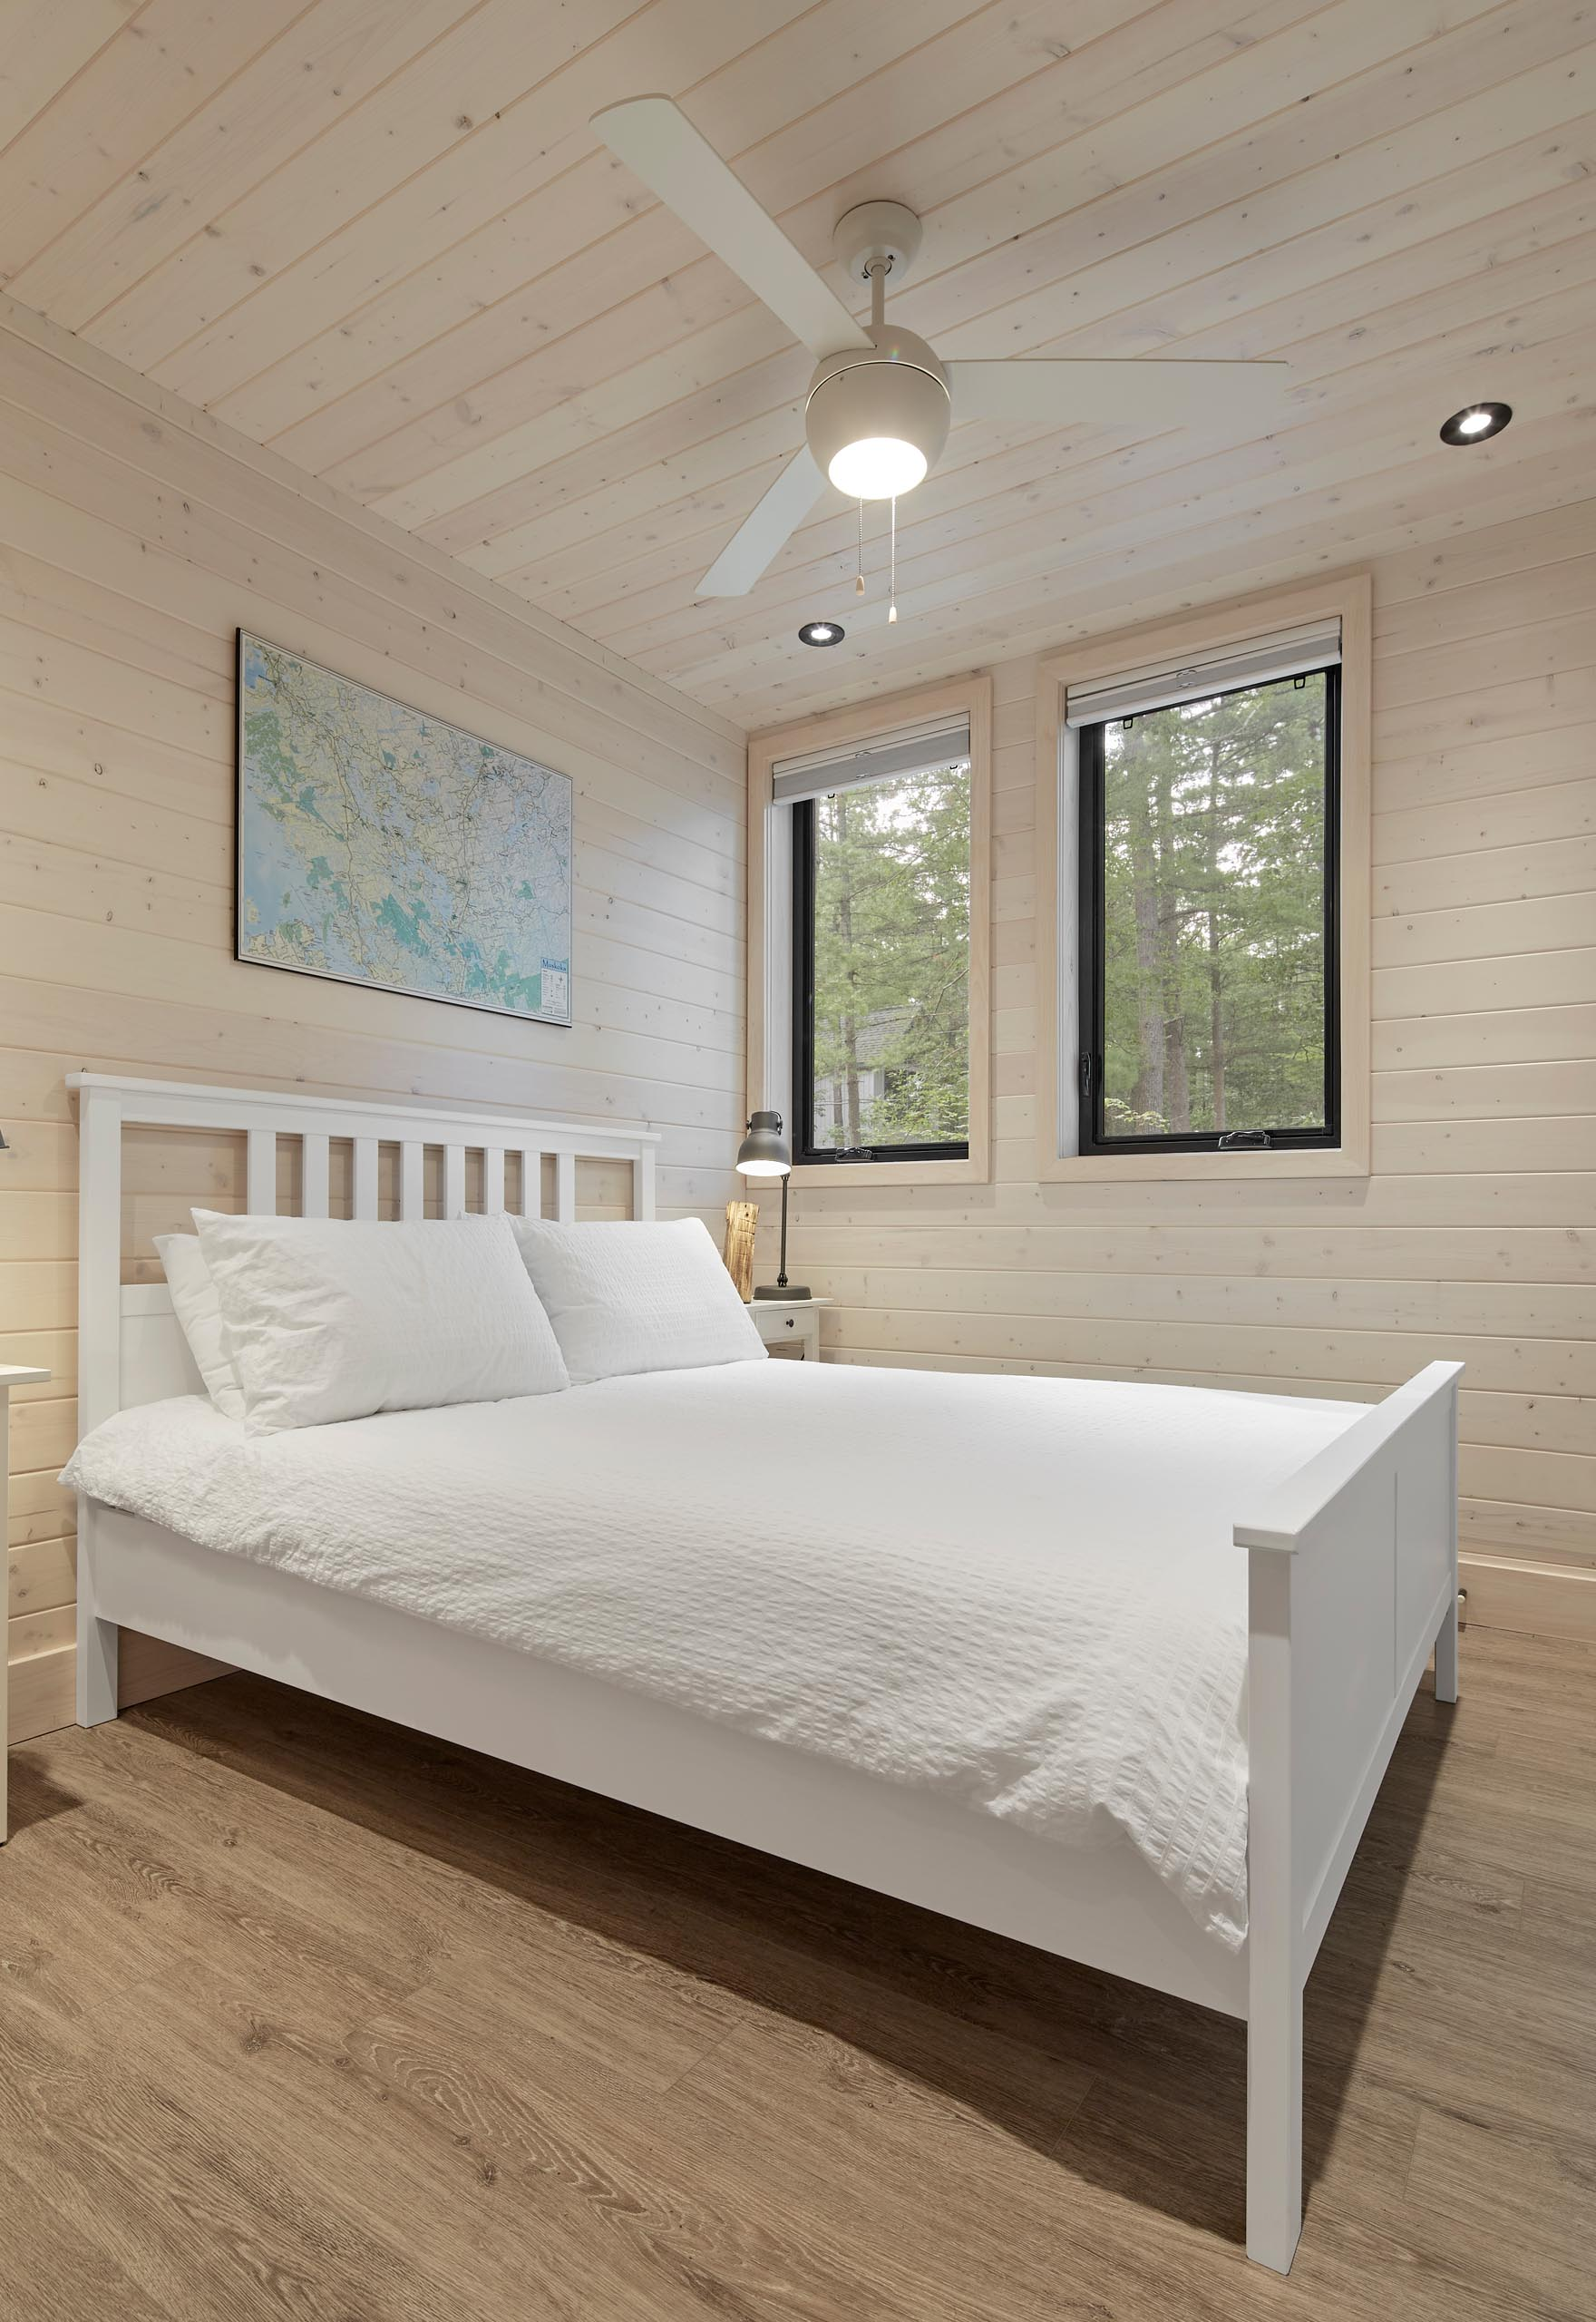 A modern cottage bedroom with light wood walls and ceiling.